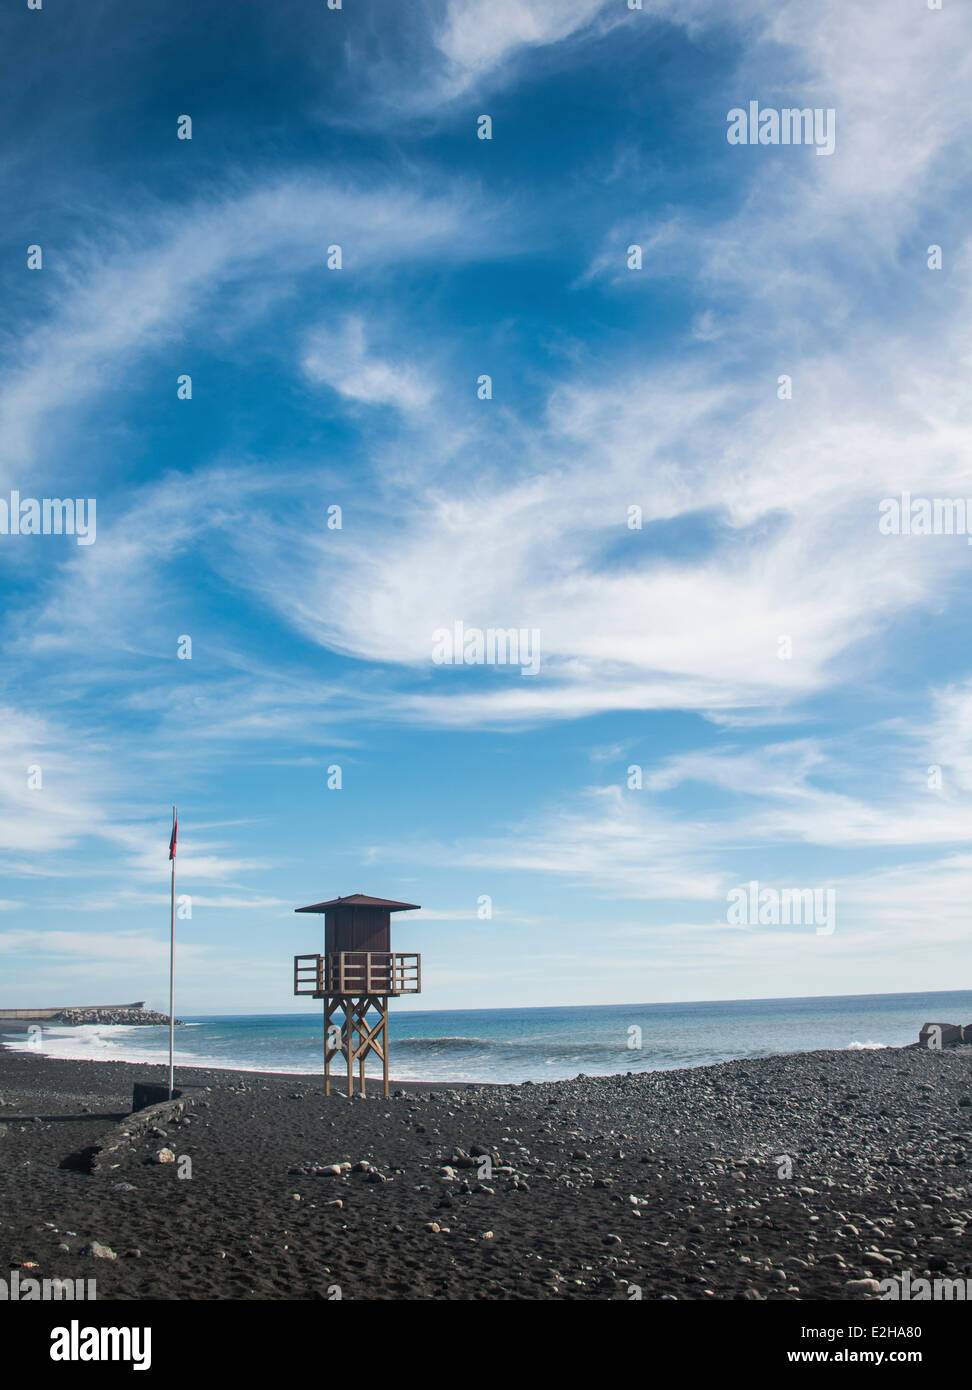 Watch tower on the beach, red flag, Tazacorte, La Palma, Canary Islands, Spain - Stock Image